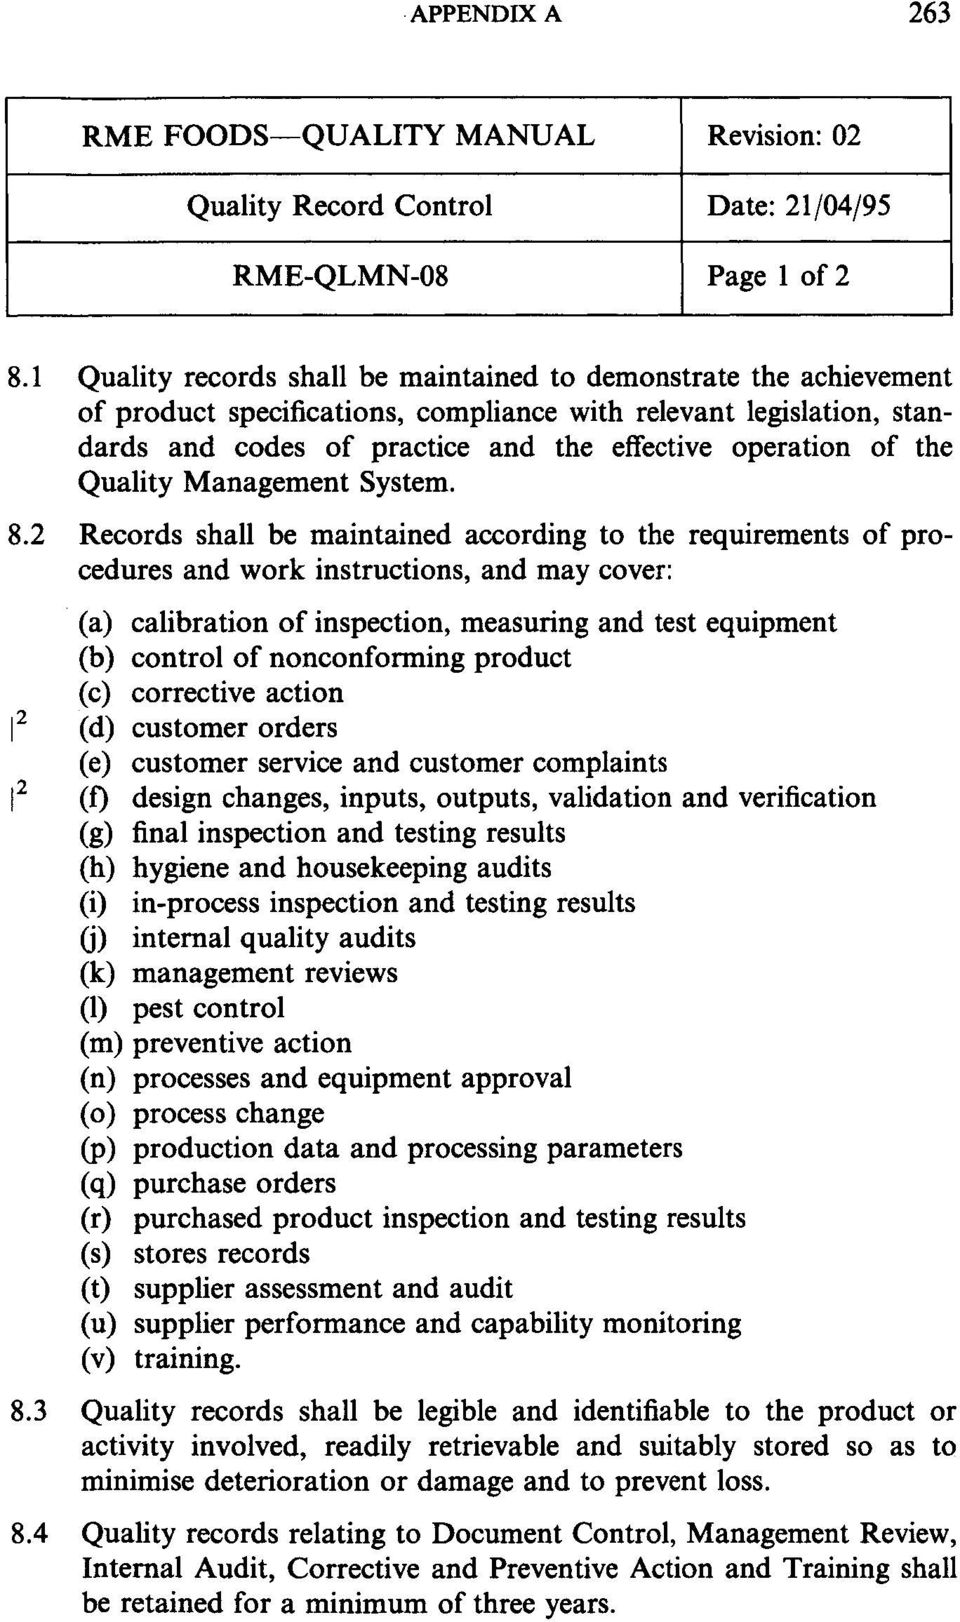 the Quality Management System. S.2 Records shall be maintained according to the requirements of procedures and work instructions, and may cover:.